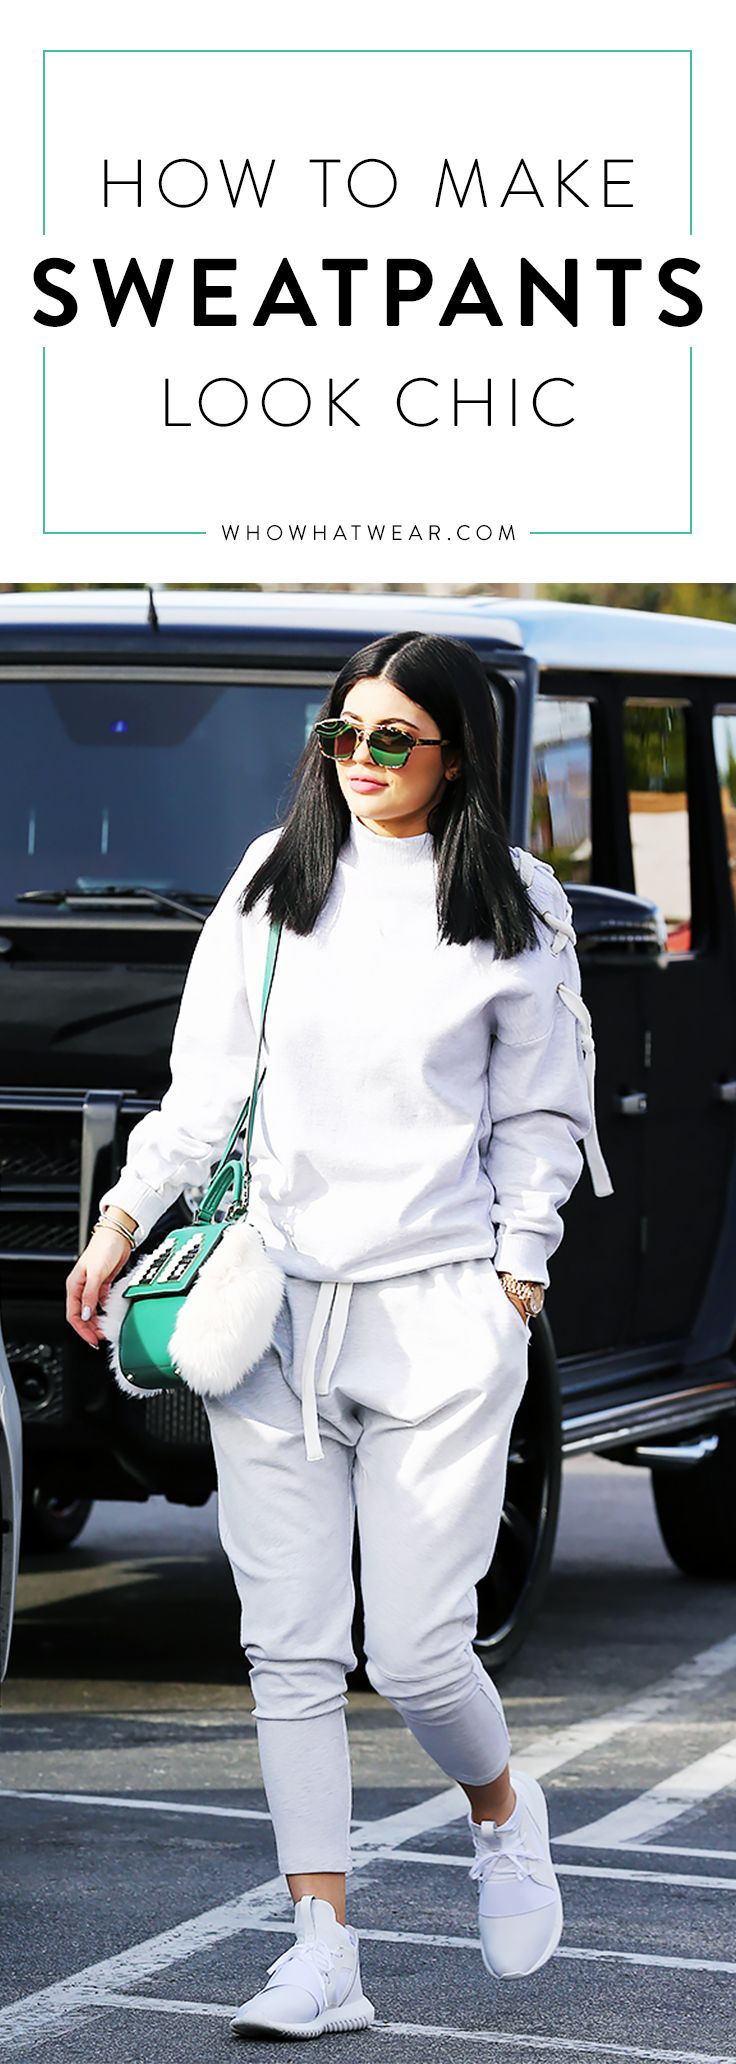 How to look stylish in sweatpants, like Kylie Jenner